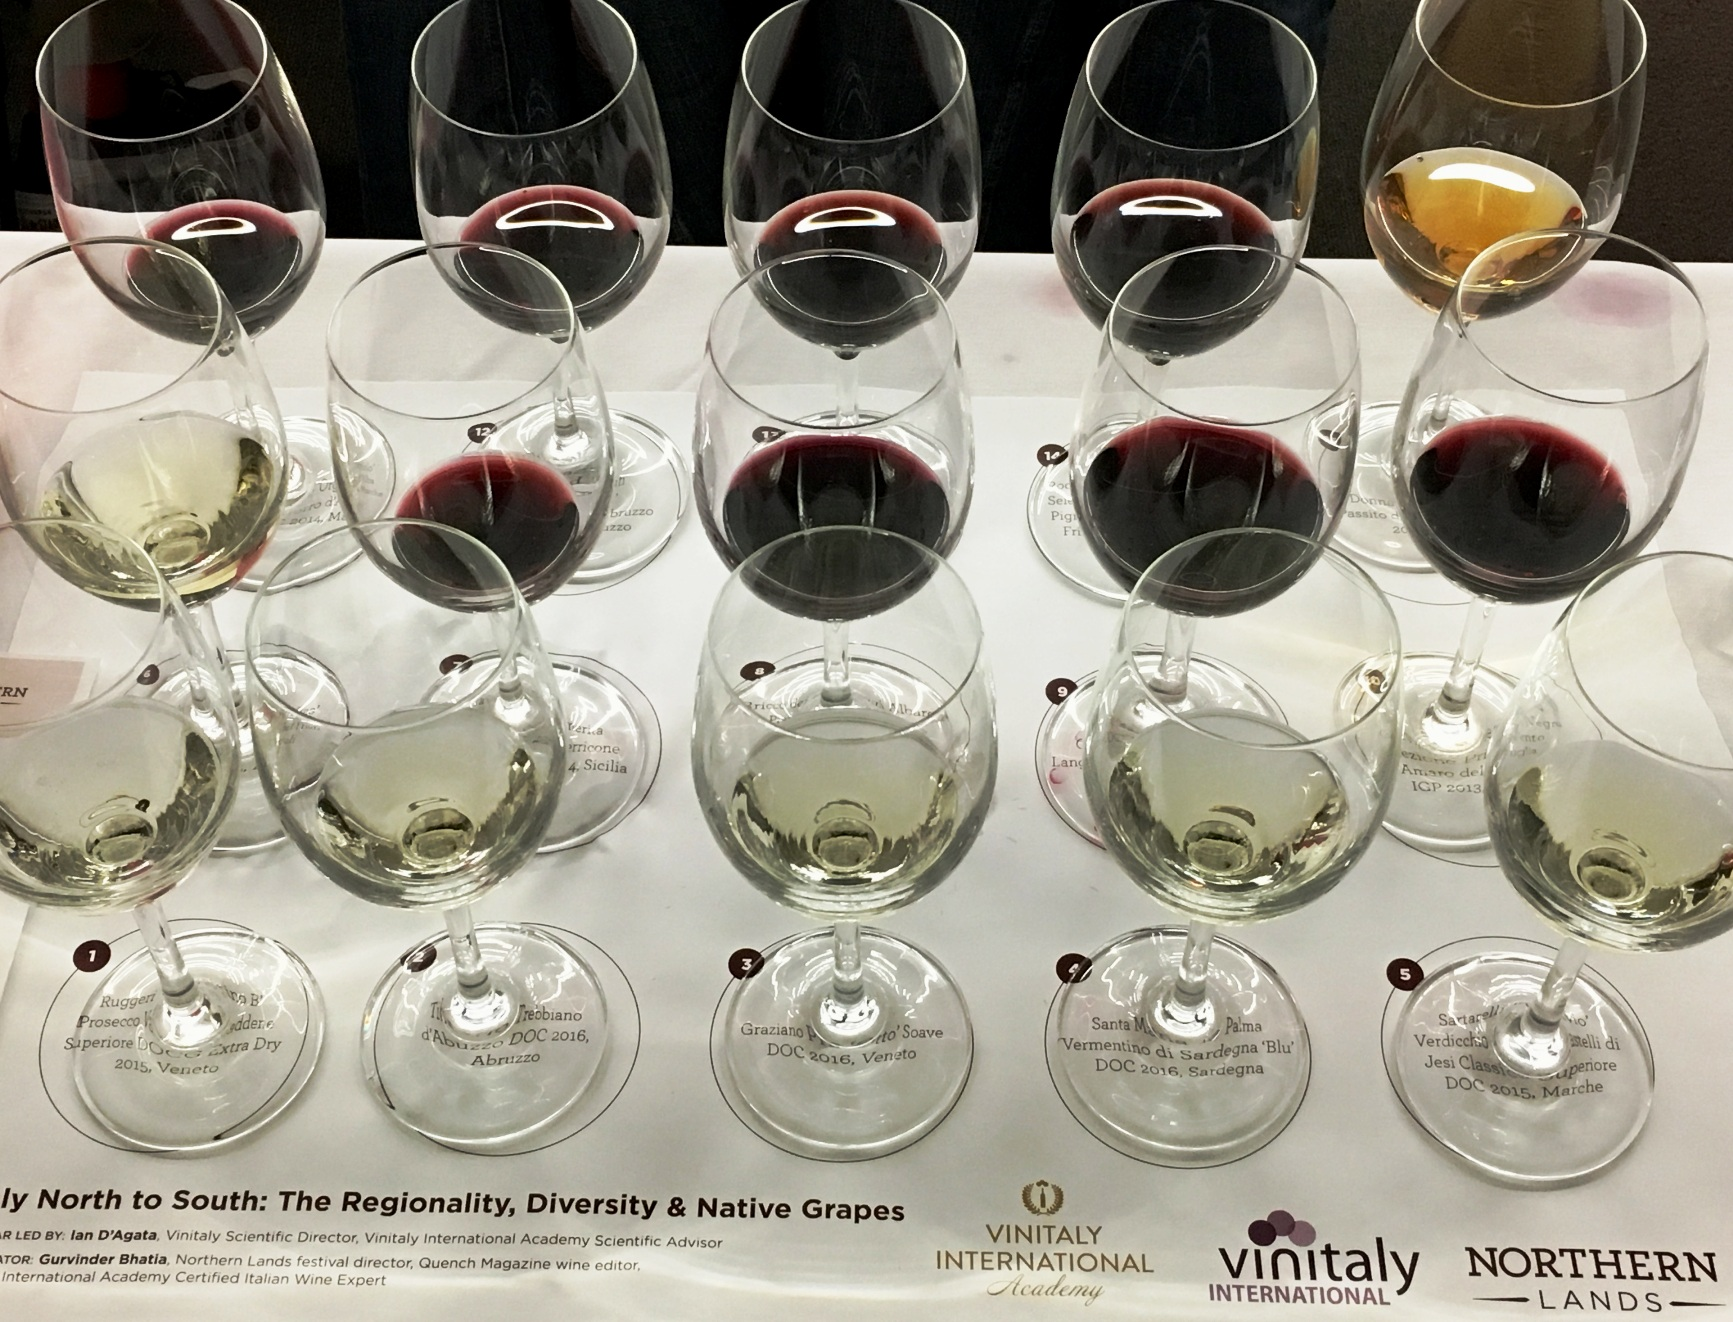 Vinitaly 2017 Edmonton roadshow: Italy North to South